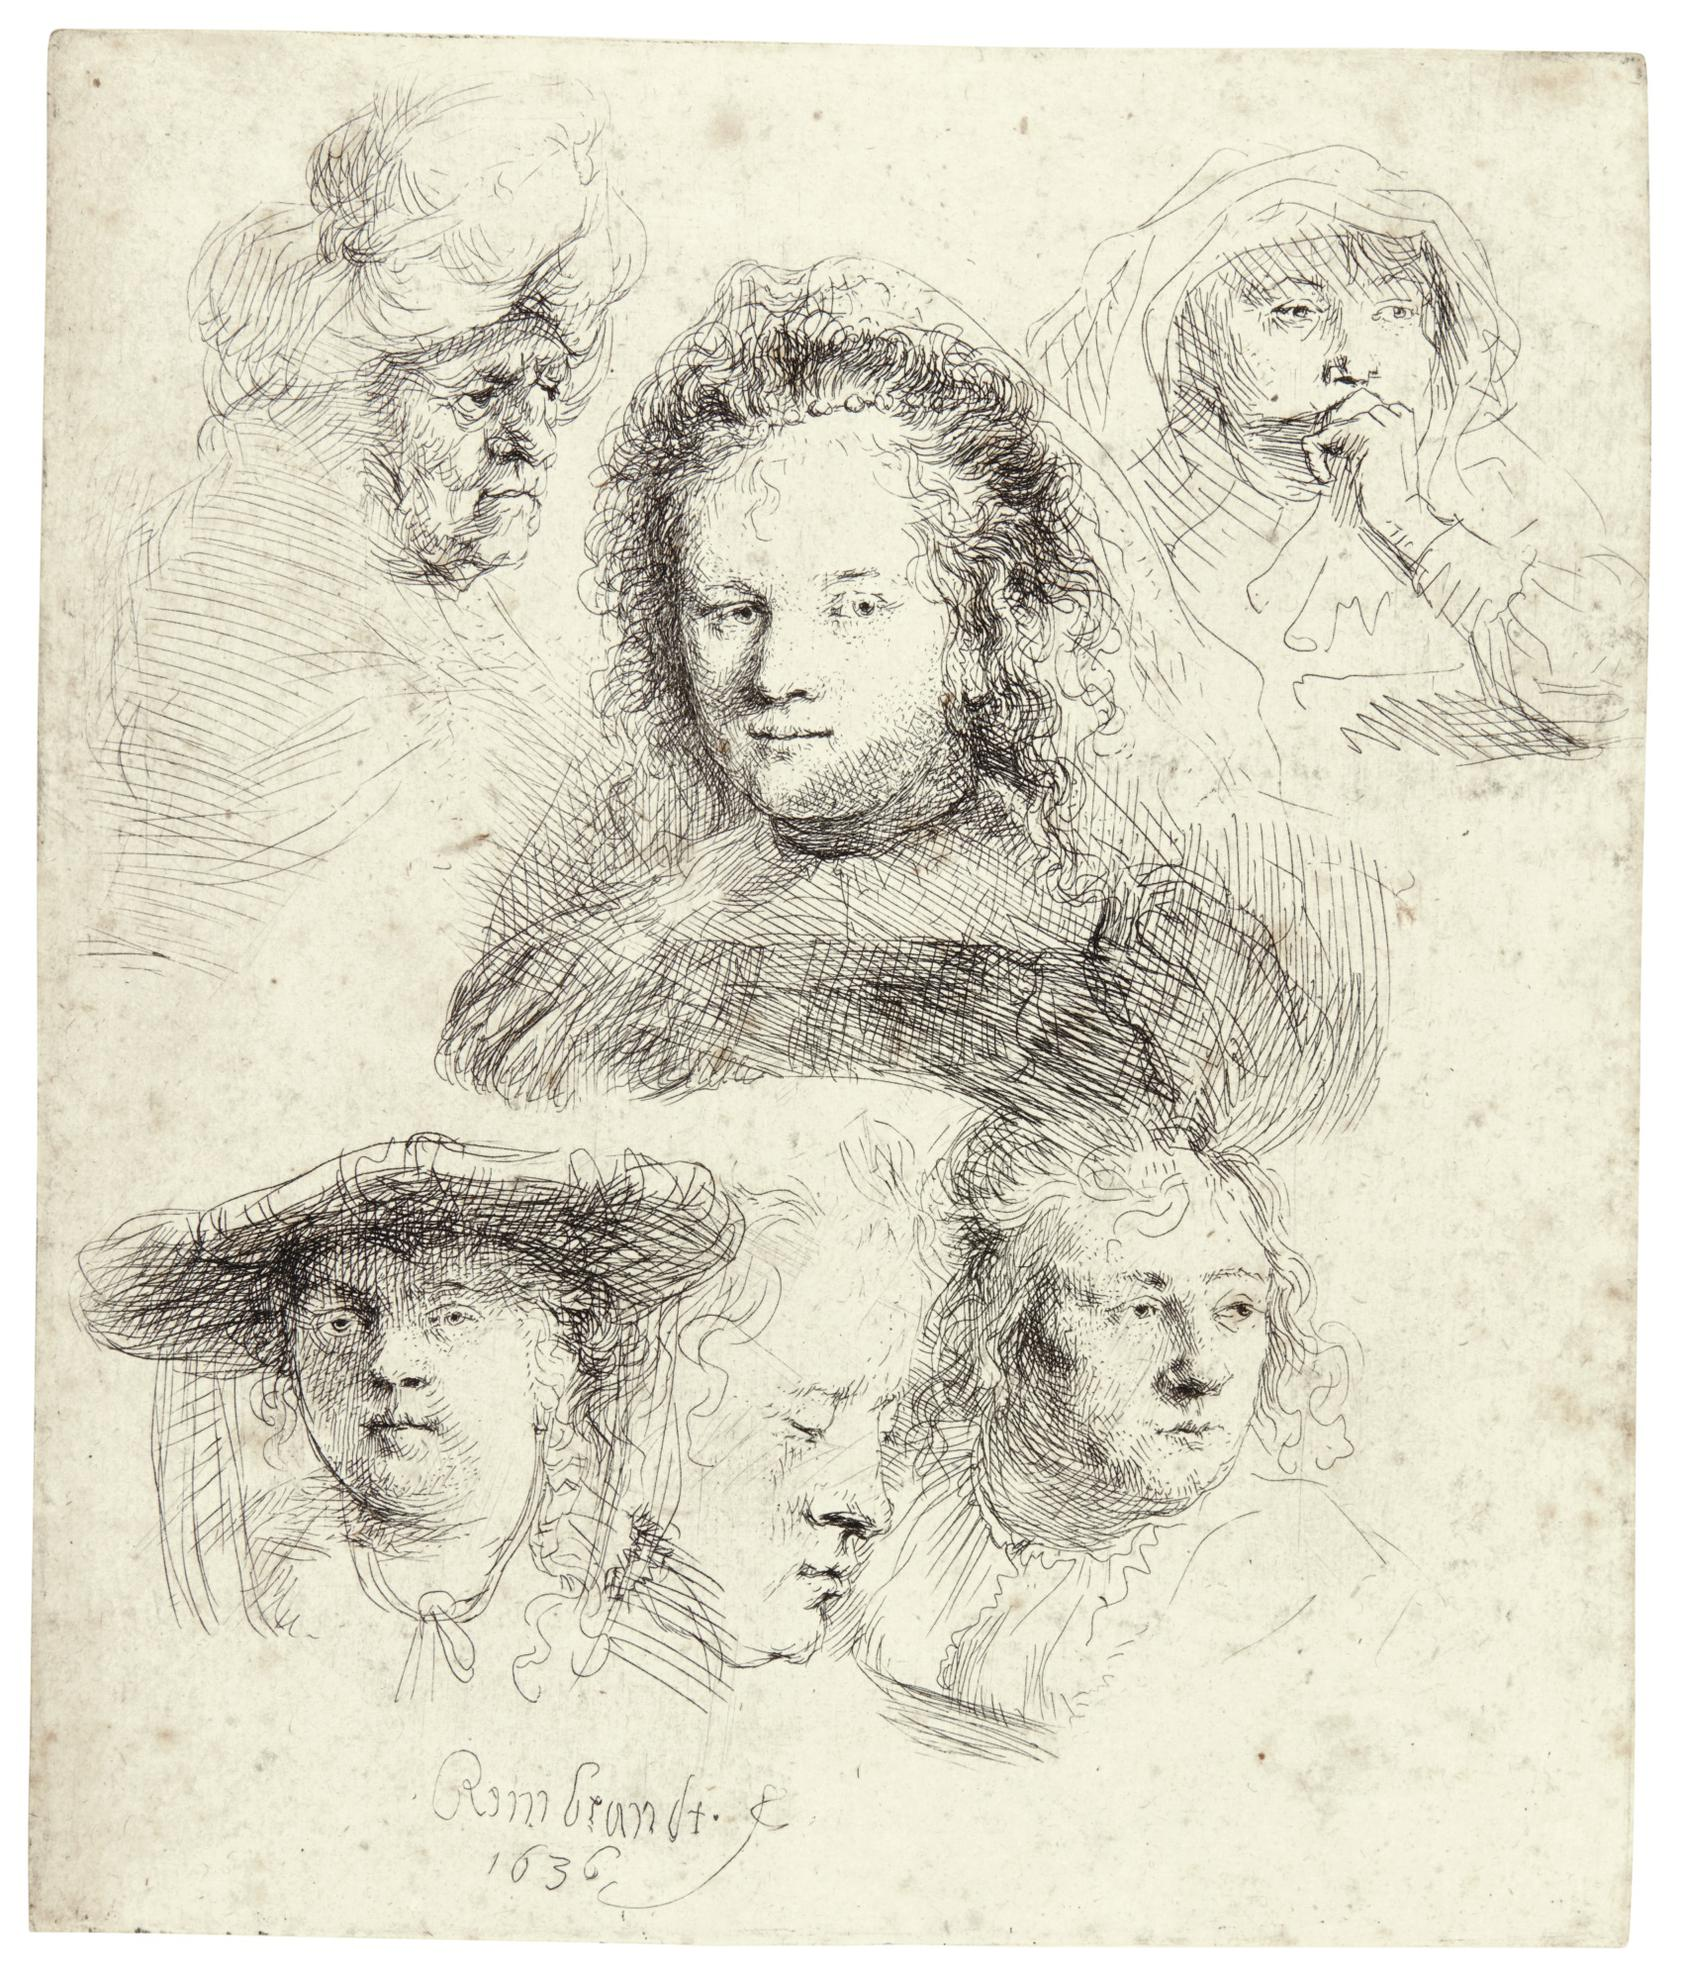 Rembrandt van Rijn-Studies Of The Head Of Saskia And Others (B., Holl. 365; New Holl. 157; H. 145)-1636